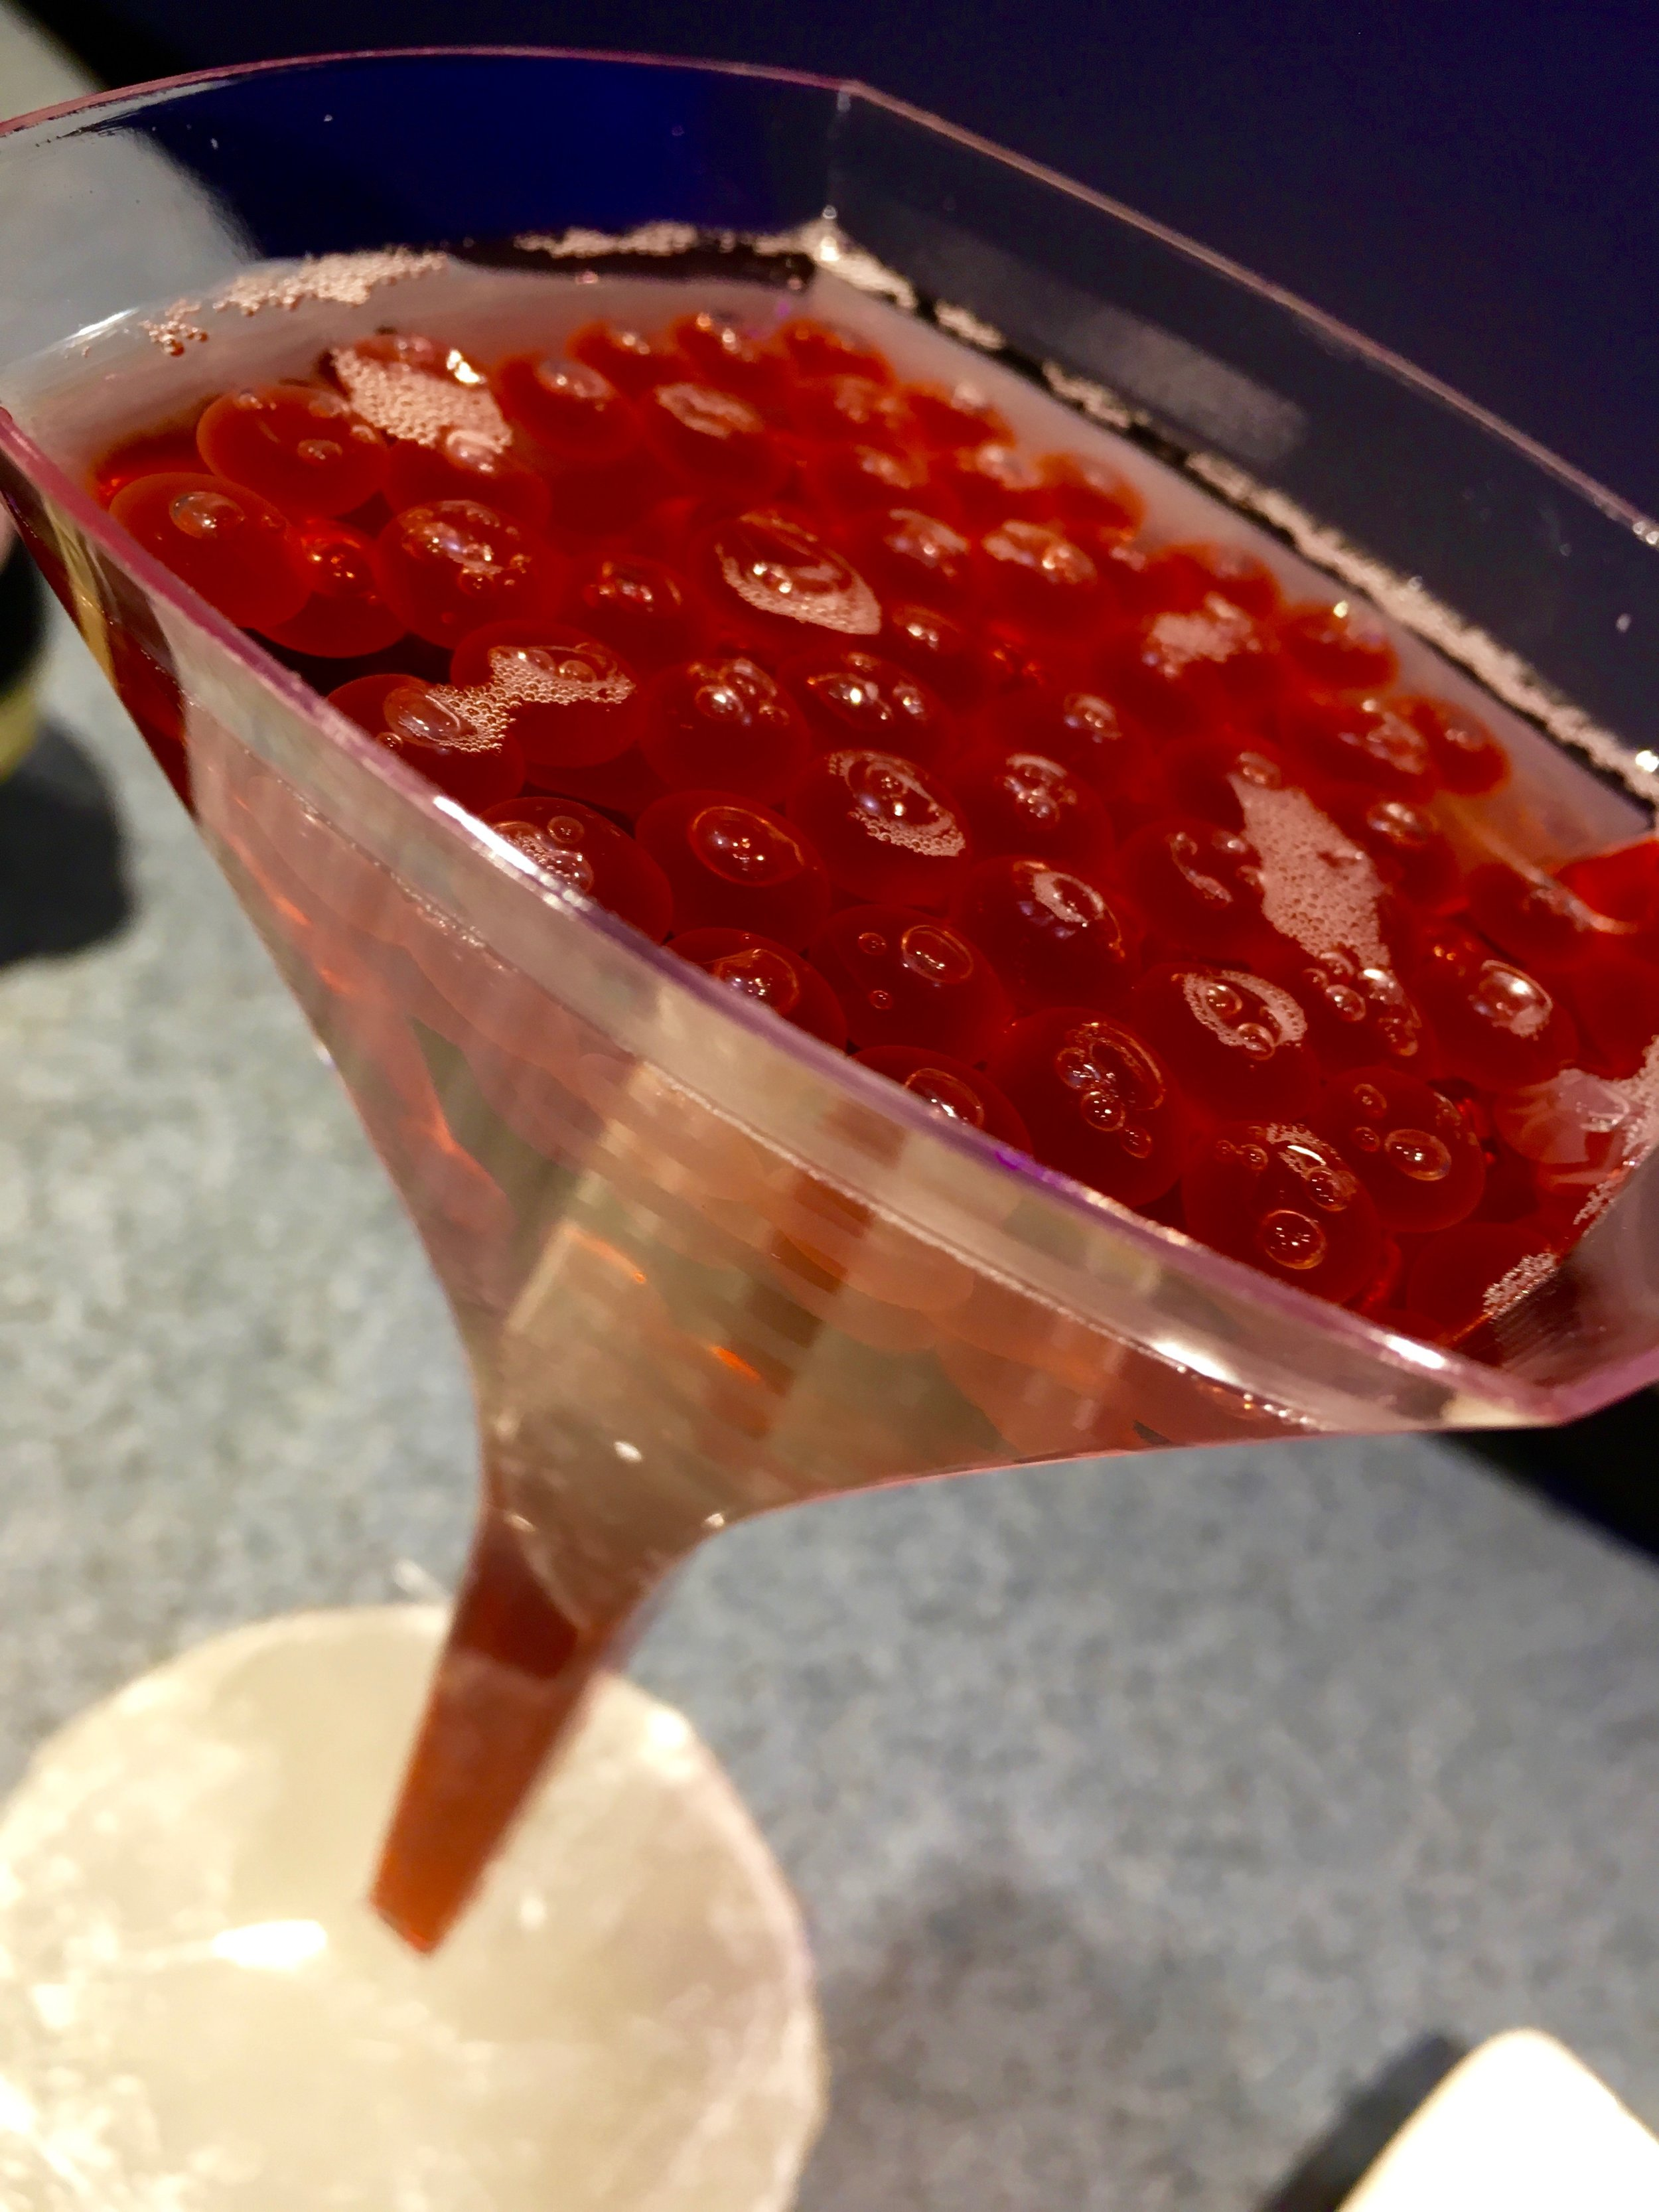 I'm pretty sure this its the Popping Bubbles cocktail from Pop Eats! Disney had it on display at the media event and I failed to get details, but it is so fun-looking I had to share.